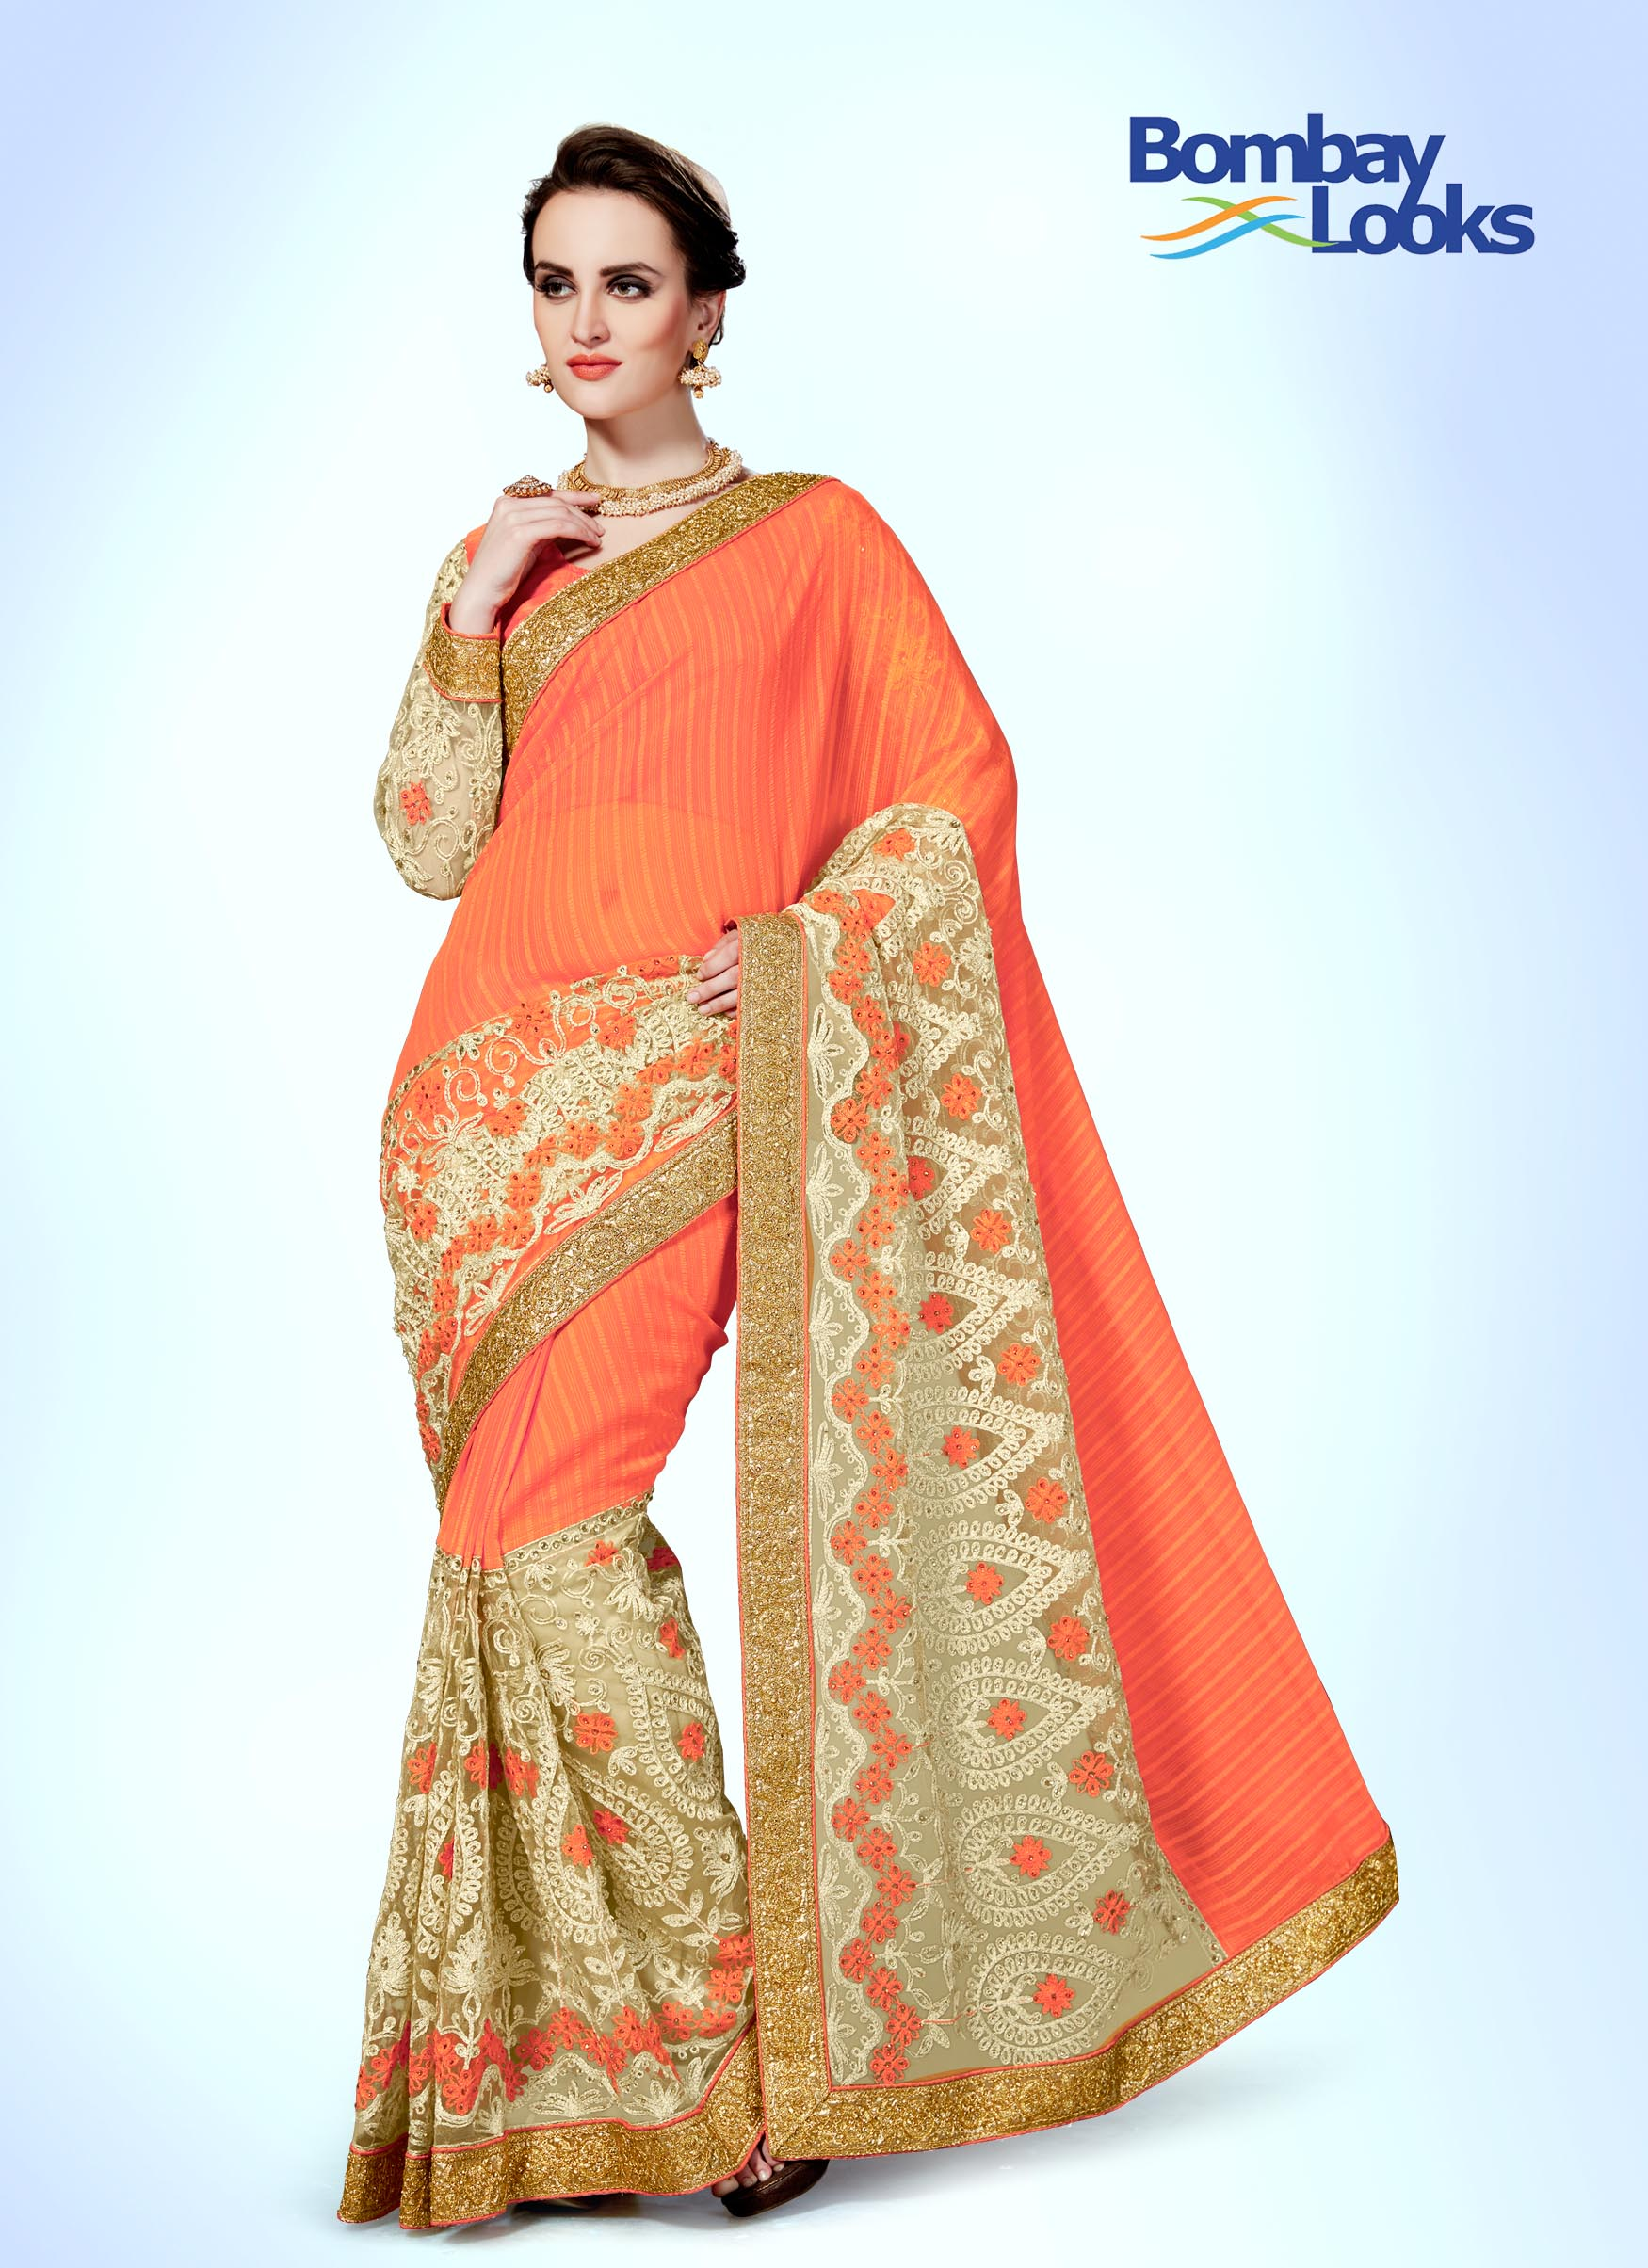 Peachy orange saree with heavy skirt embroidery